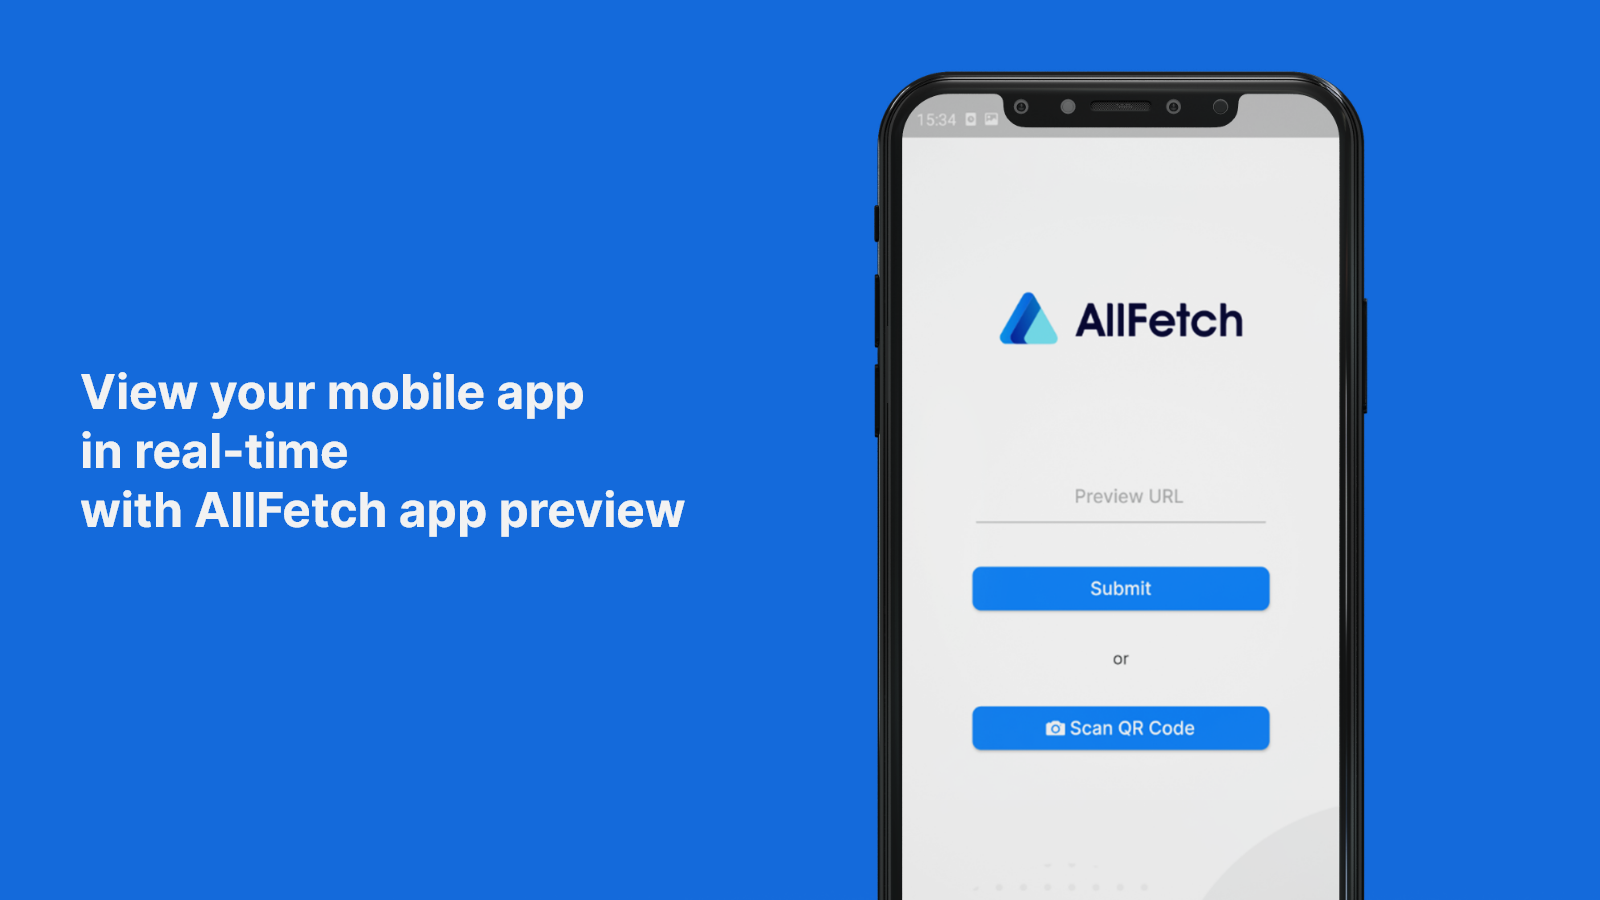 View your mobile app in real-time with AllFetch app preview